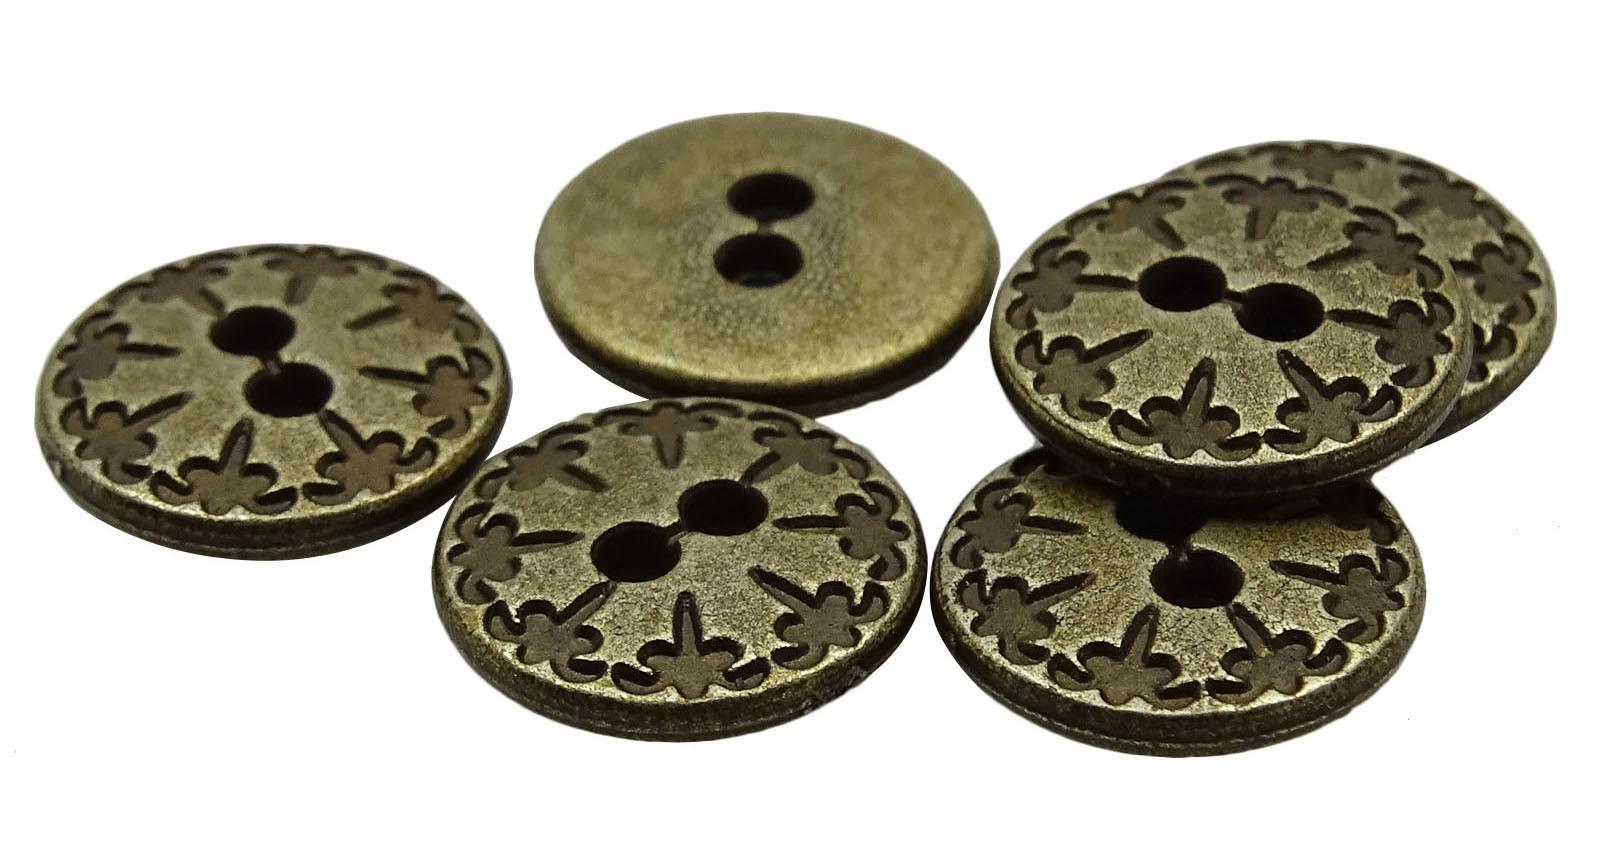 Diy Metal Craft Sewing Accessories Wholesale Round Buttons